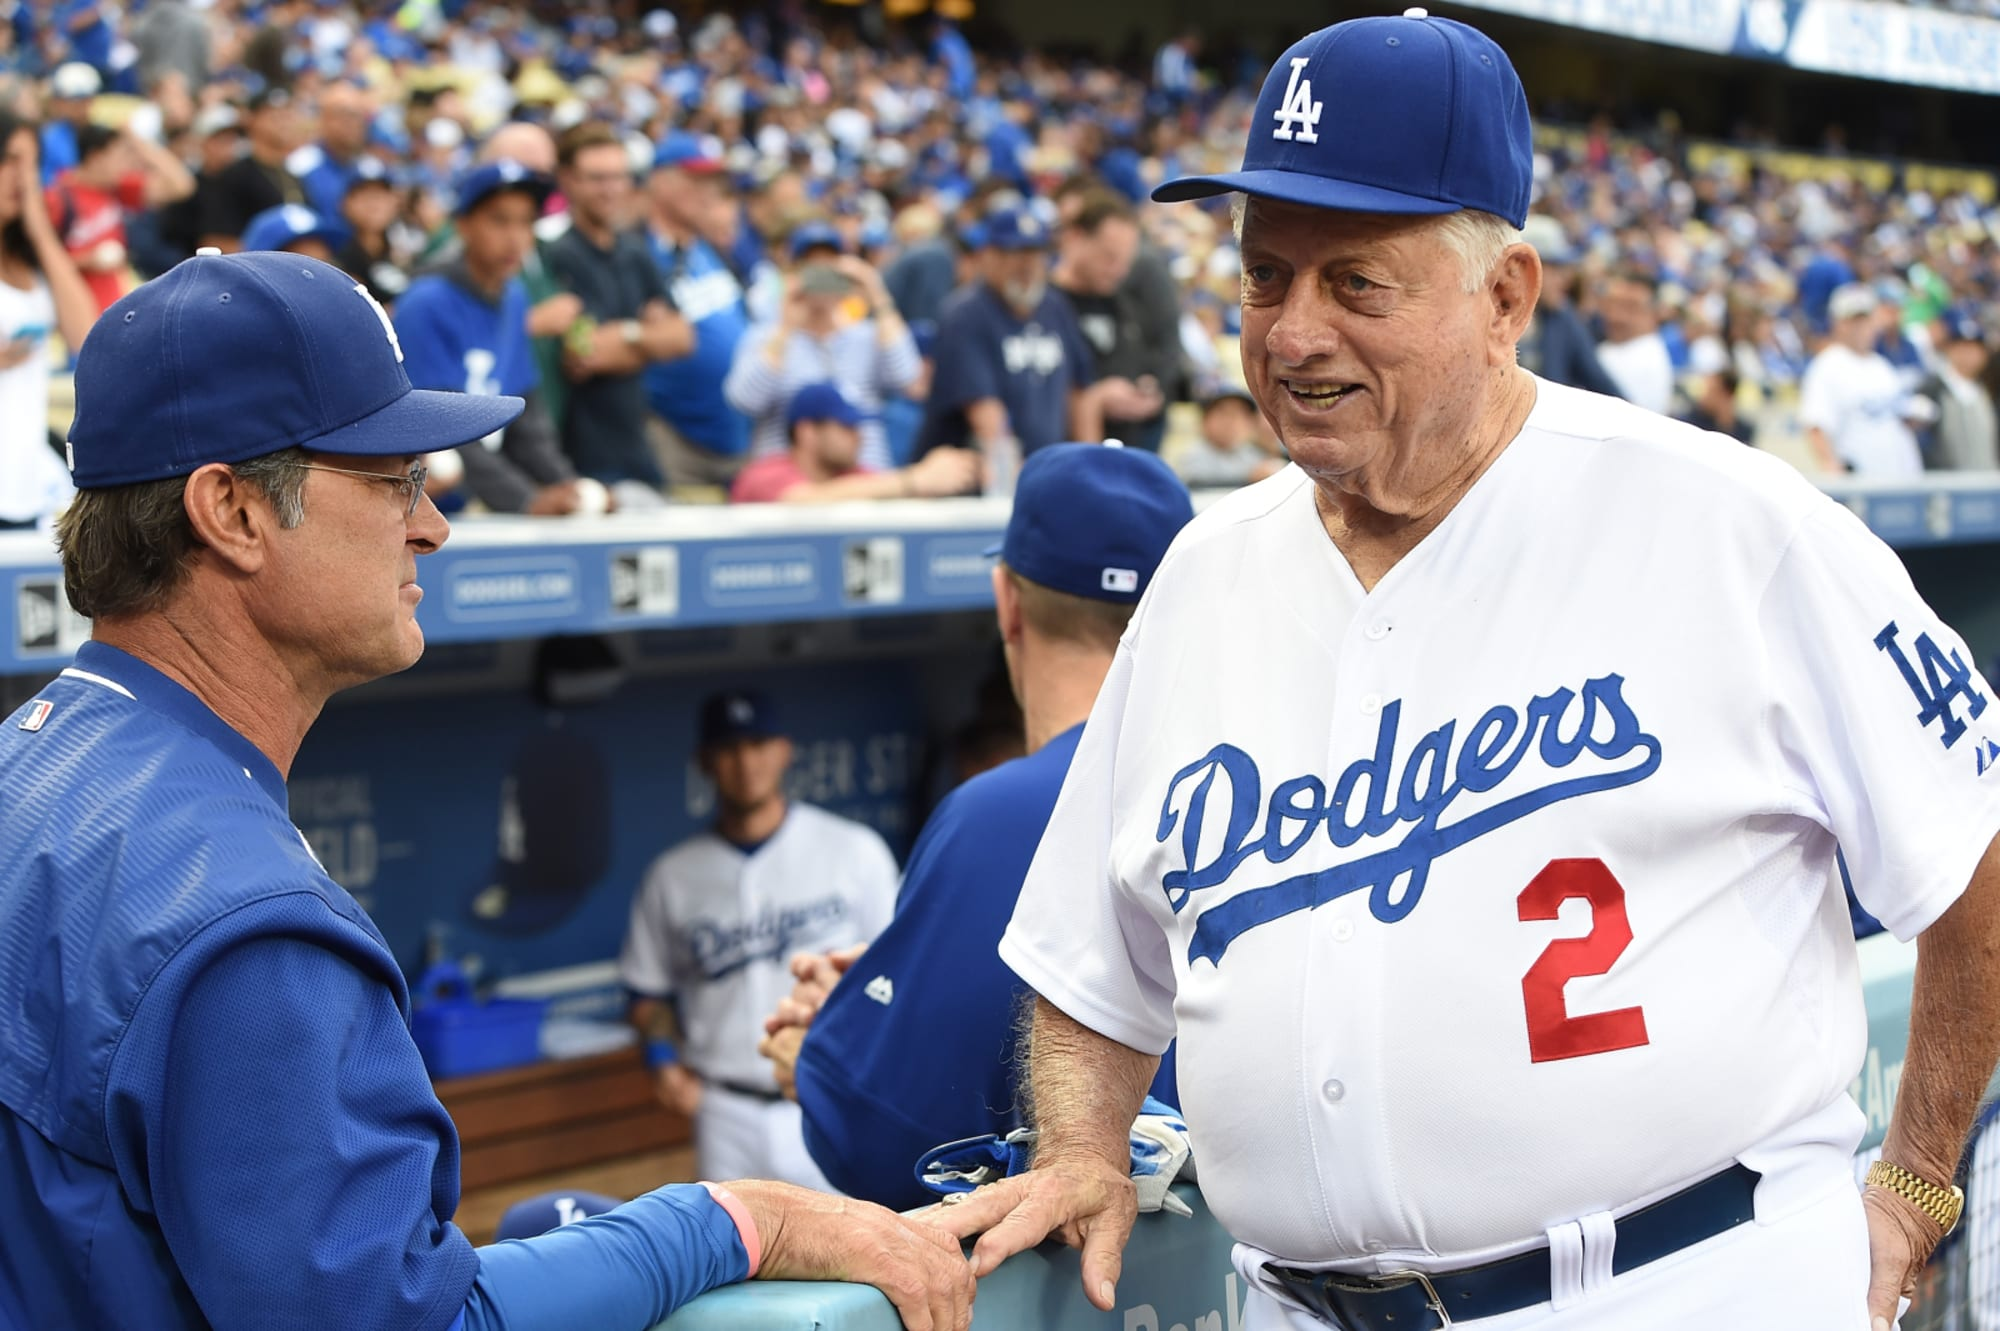 Vin Scully wishes Dodgers legend Tommy Lasorda Happy Birthday on Twitter